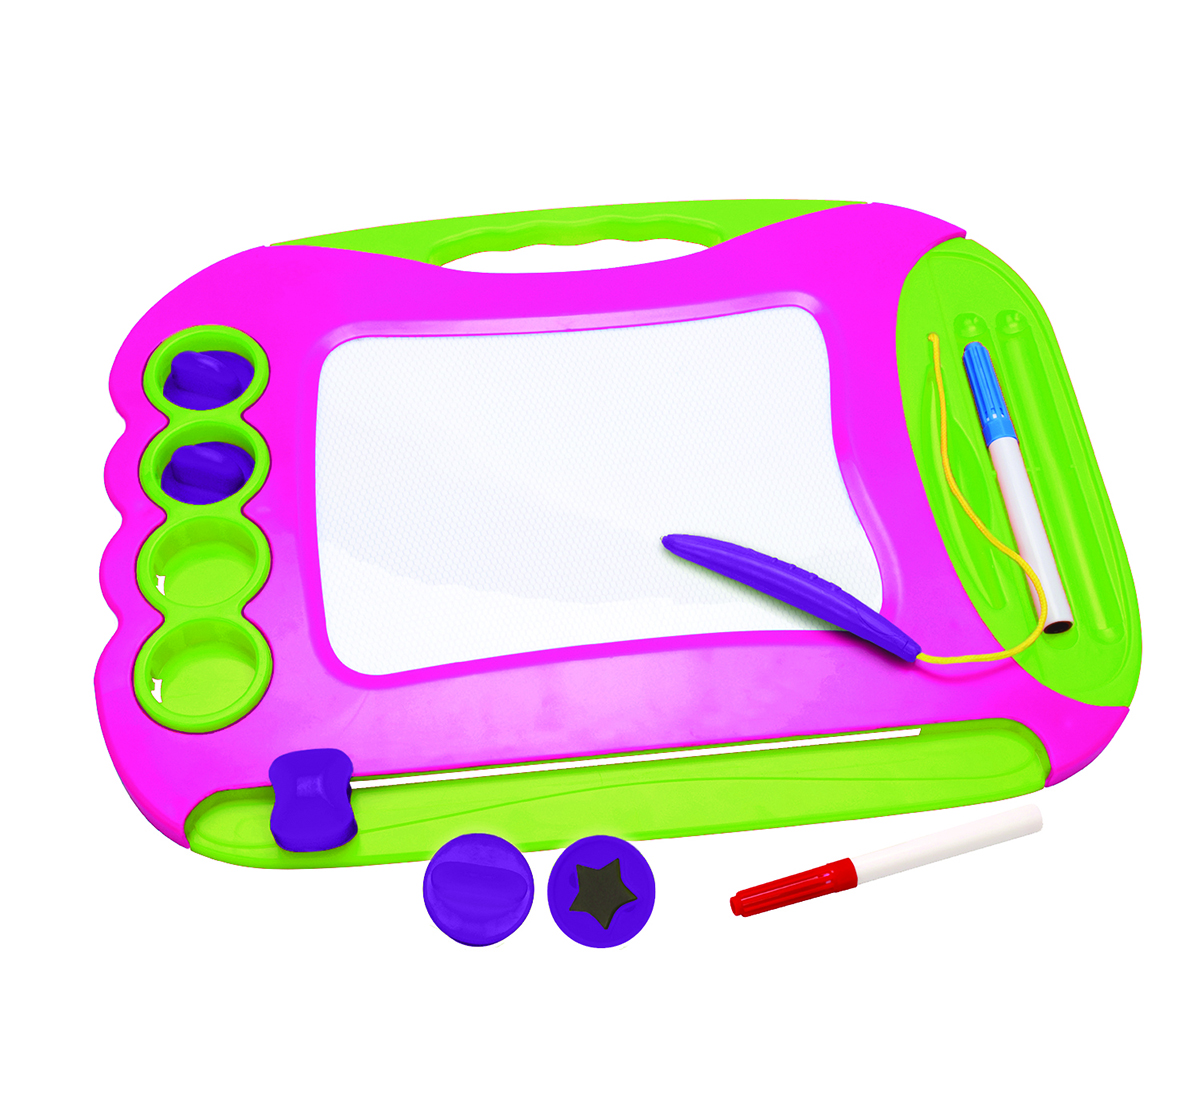 Youreka   Youreka 2 in1 Magic Writer - Pink Activity Table & Boards for Kids age 18M + (Blue)